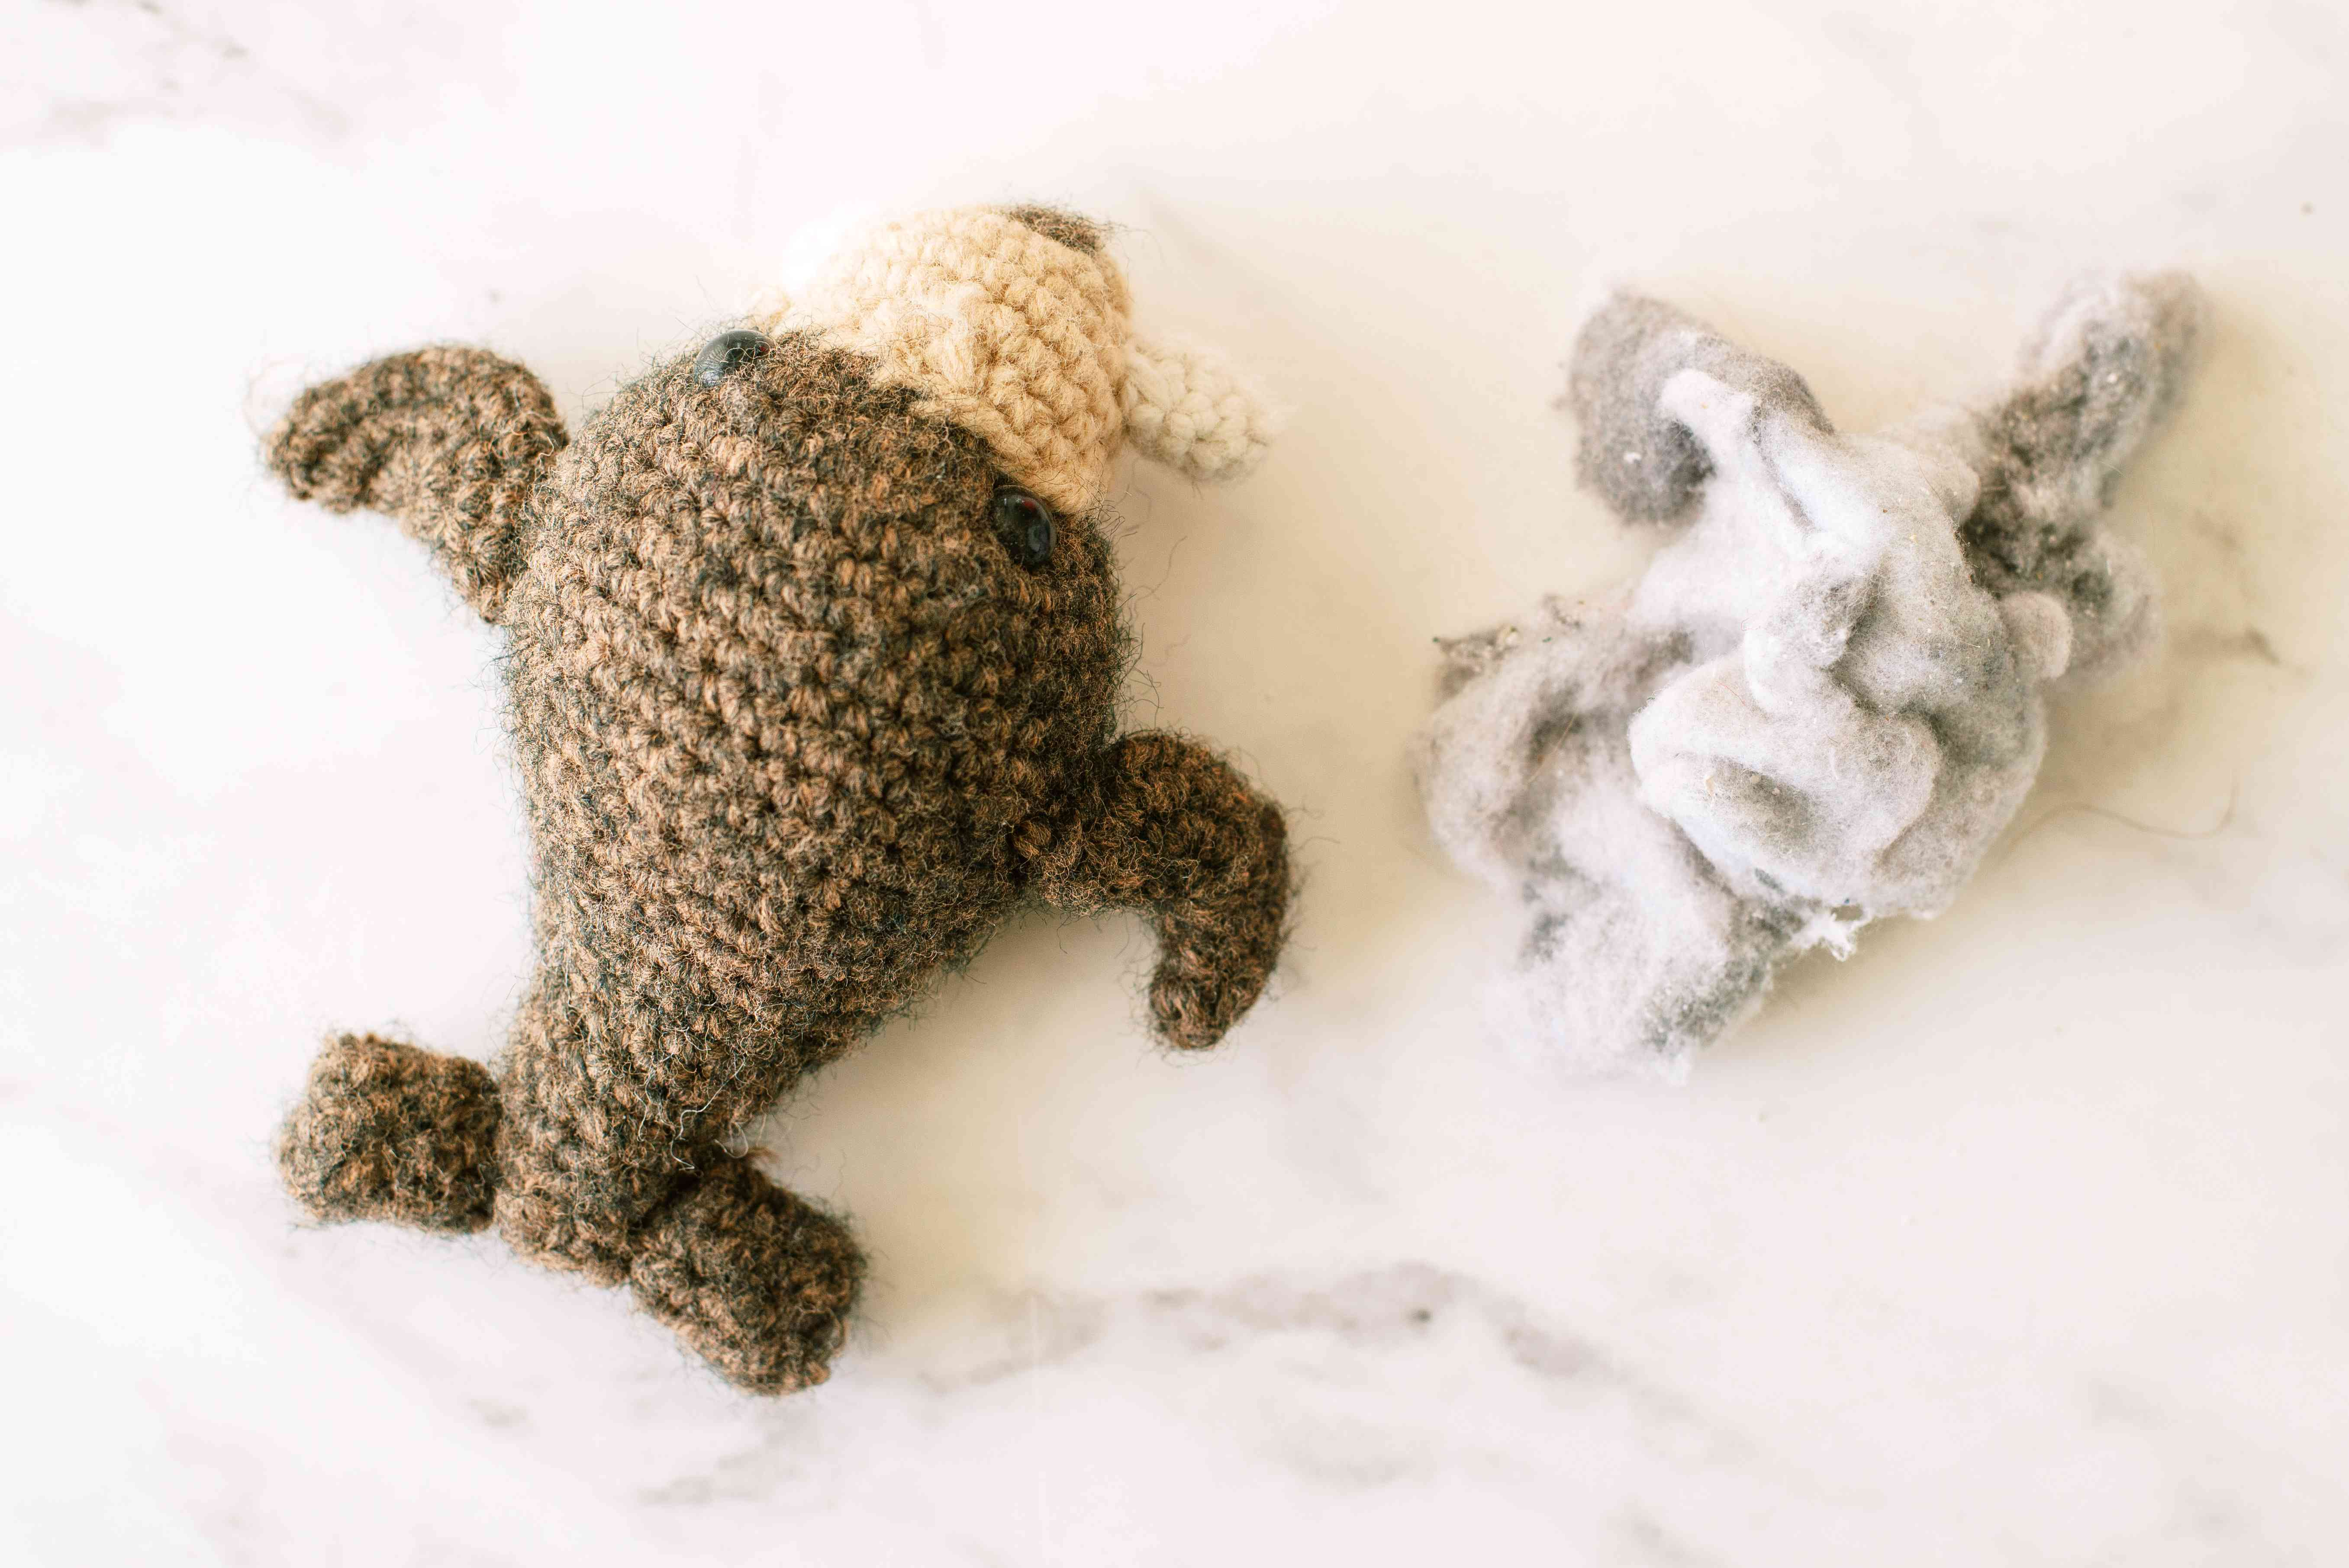 Dryer lint next to sewn walrus toy with lint stuffing